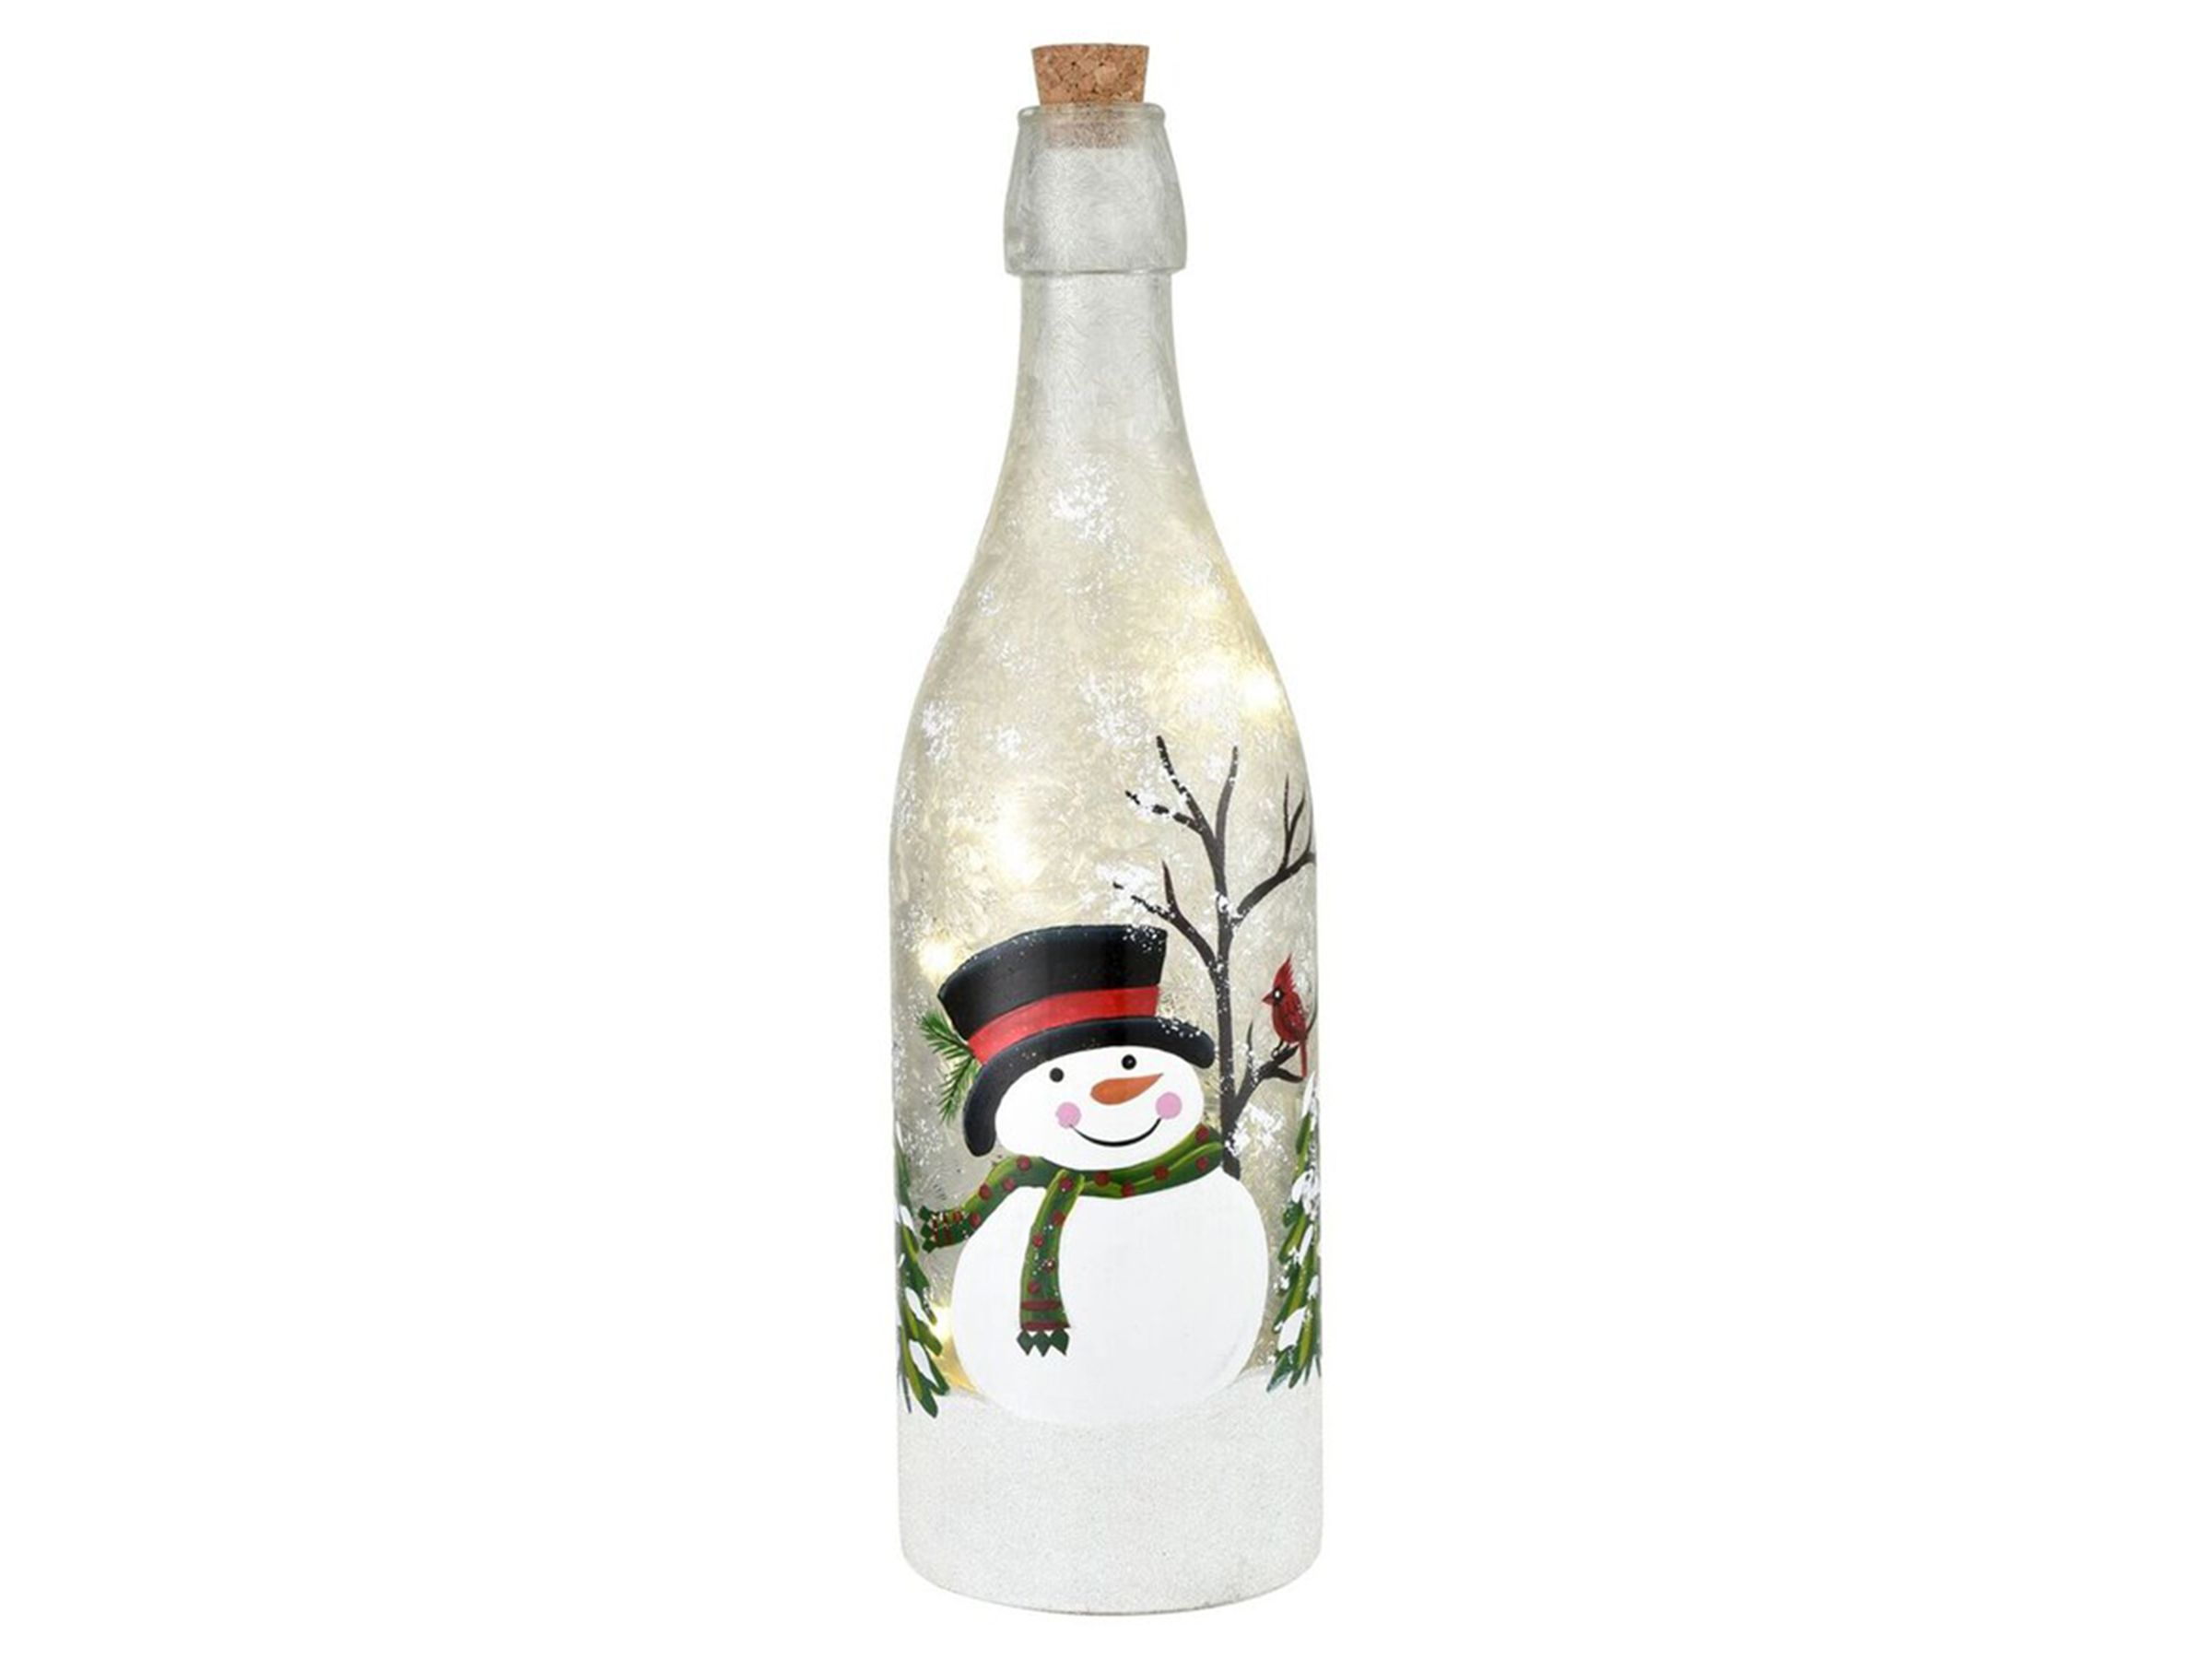 "Snowman LED Light-Up Bottle 3.25""W x 11.75""H"